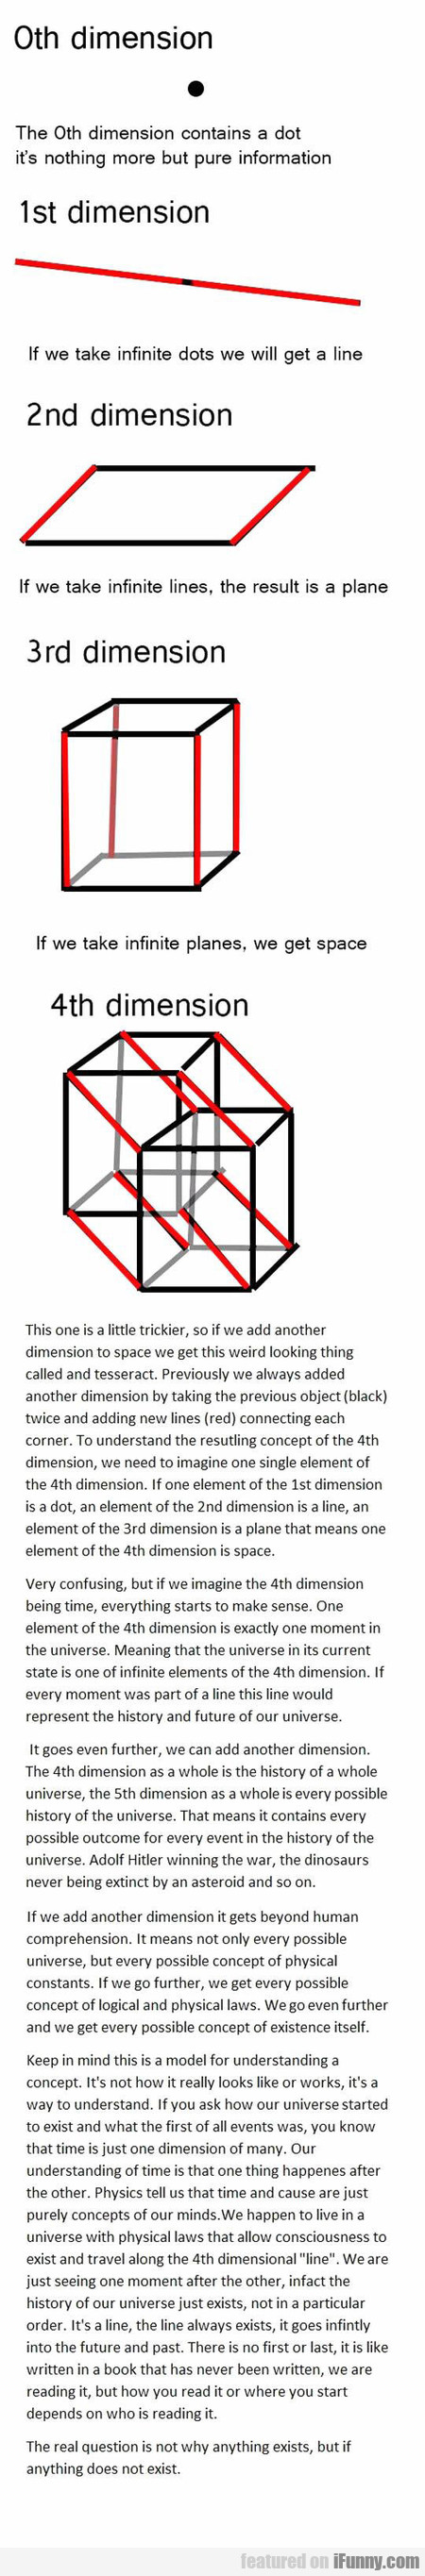 The Thing About Dimensions